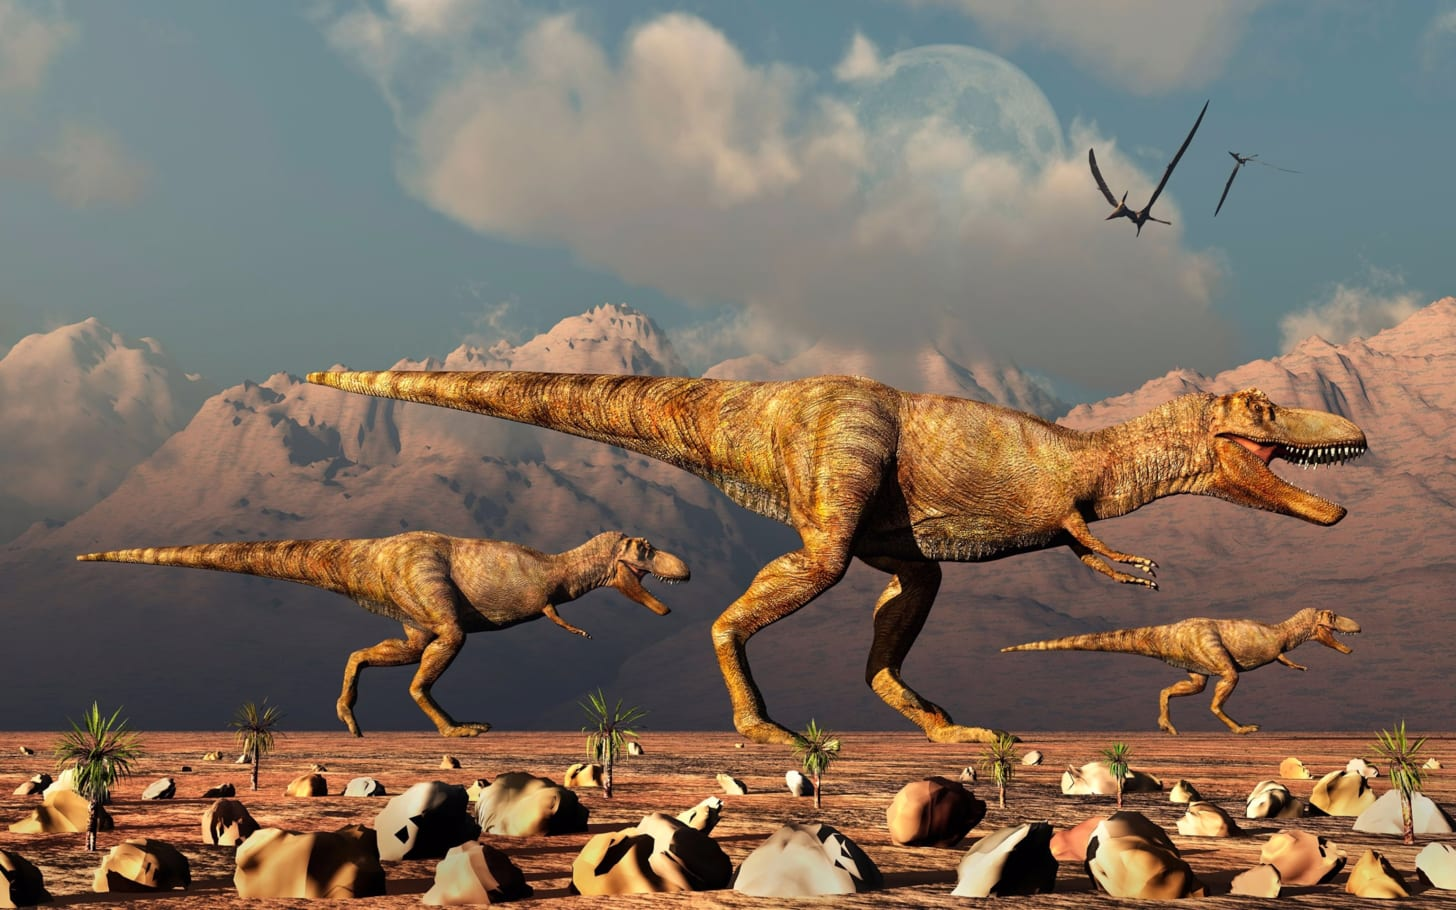 Billions of T. rex likely roamed the Earth, paleontologists report